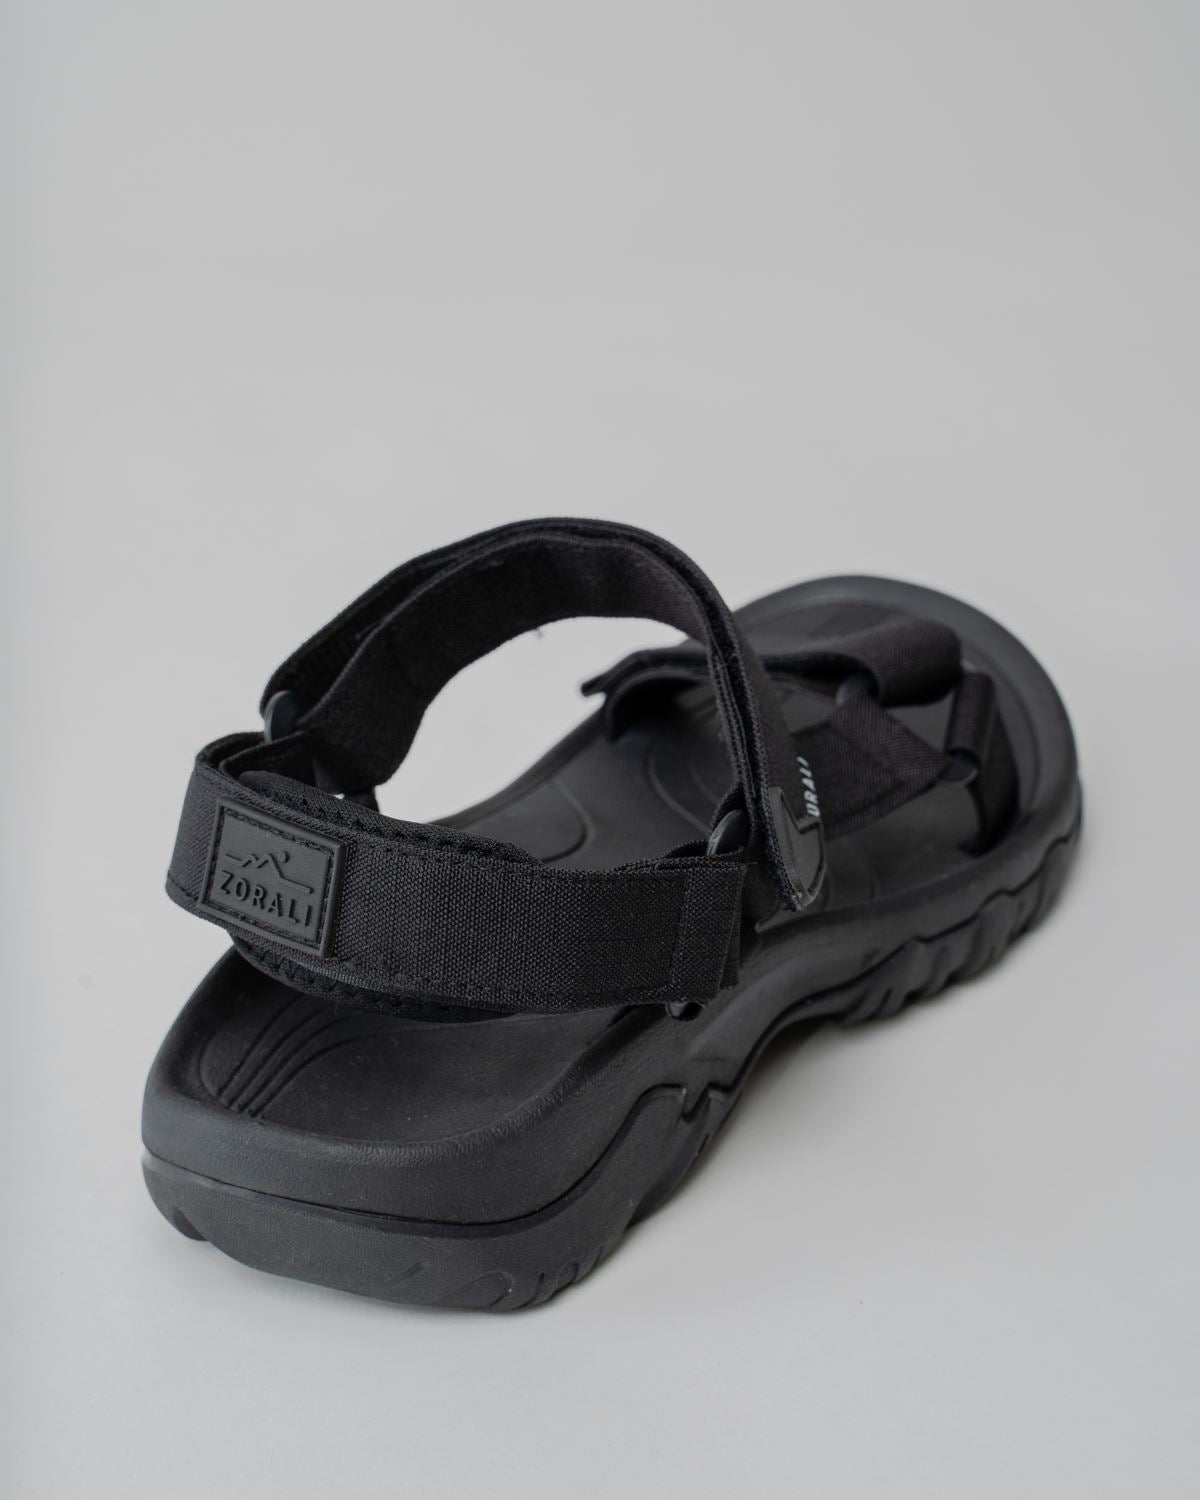 Highlands Sandals 2.0 Black Footwear Zorali